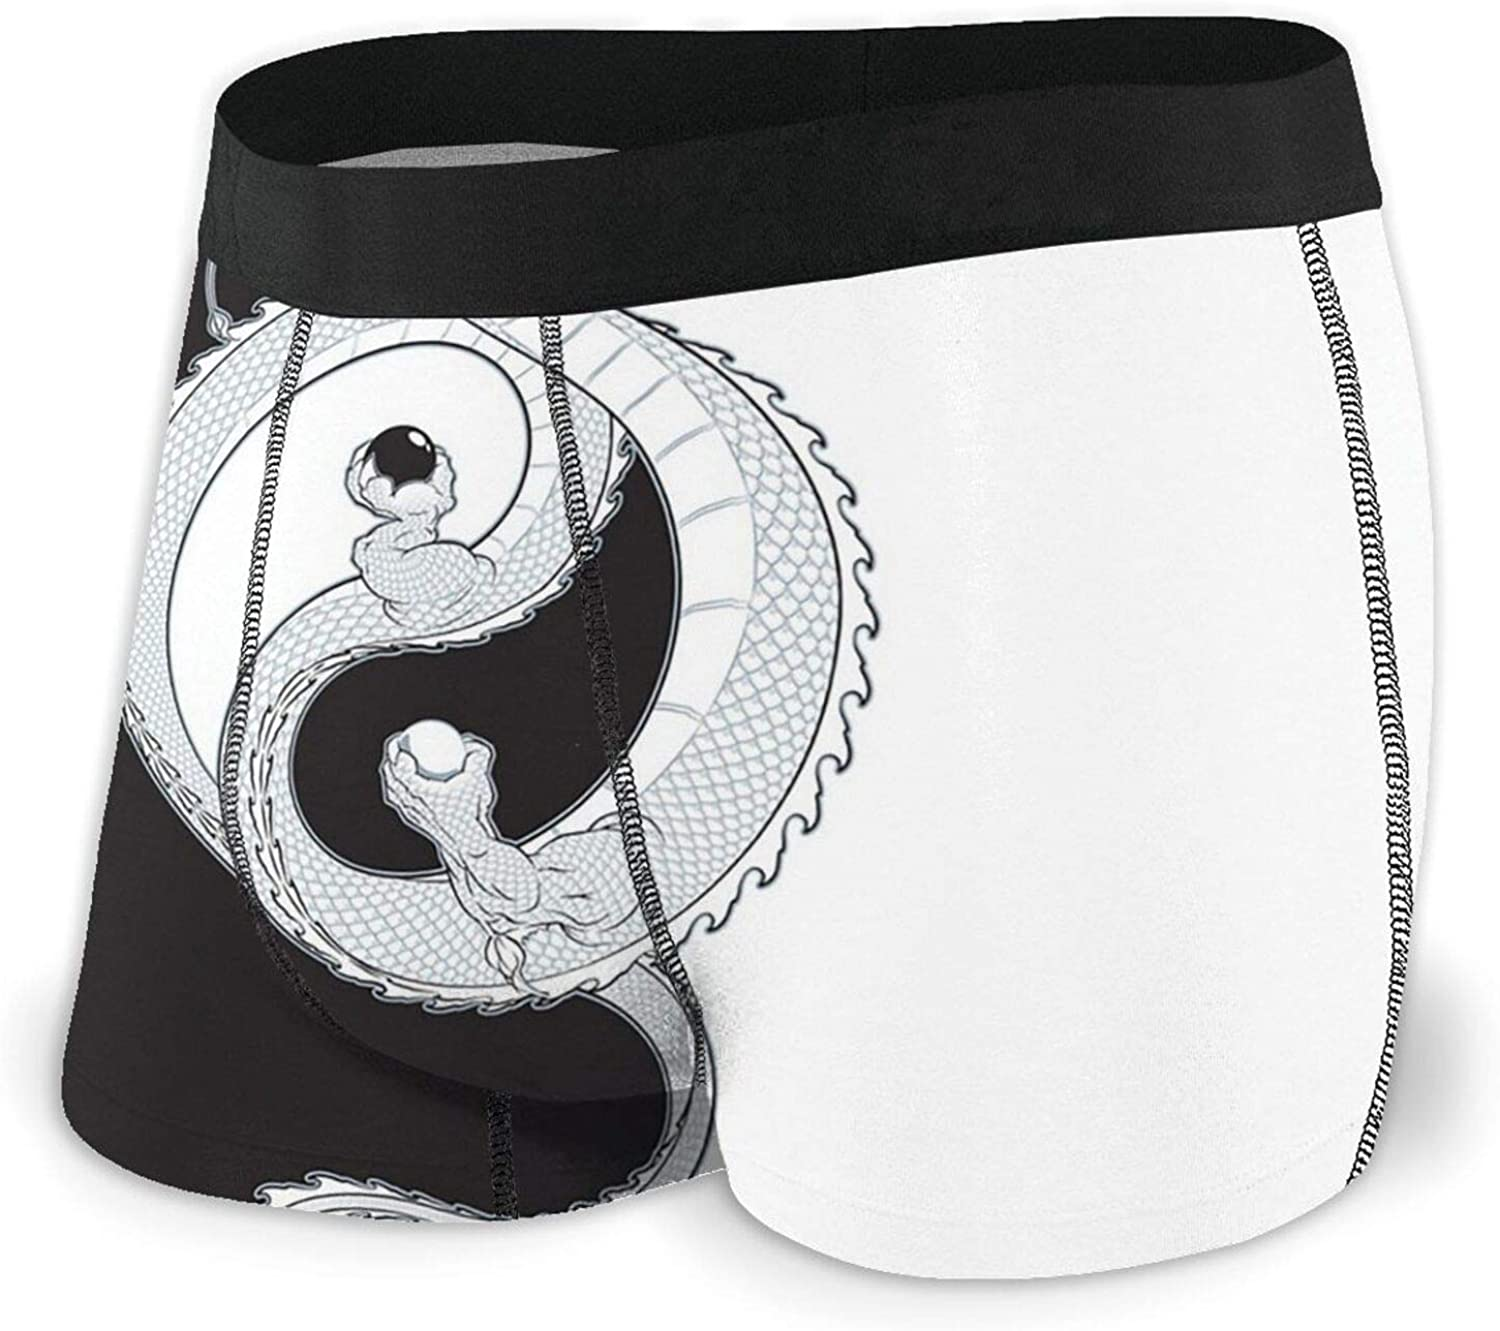 Yin Yang Dragon Men's Large-scale sale Boxer Breathable Columbus Mall Comfortable Underw Briefs